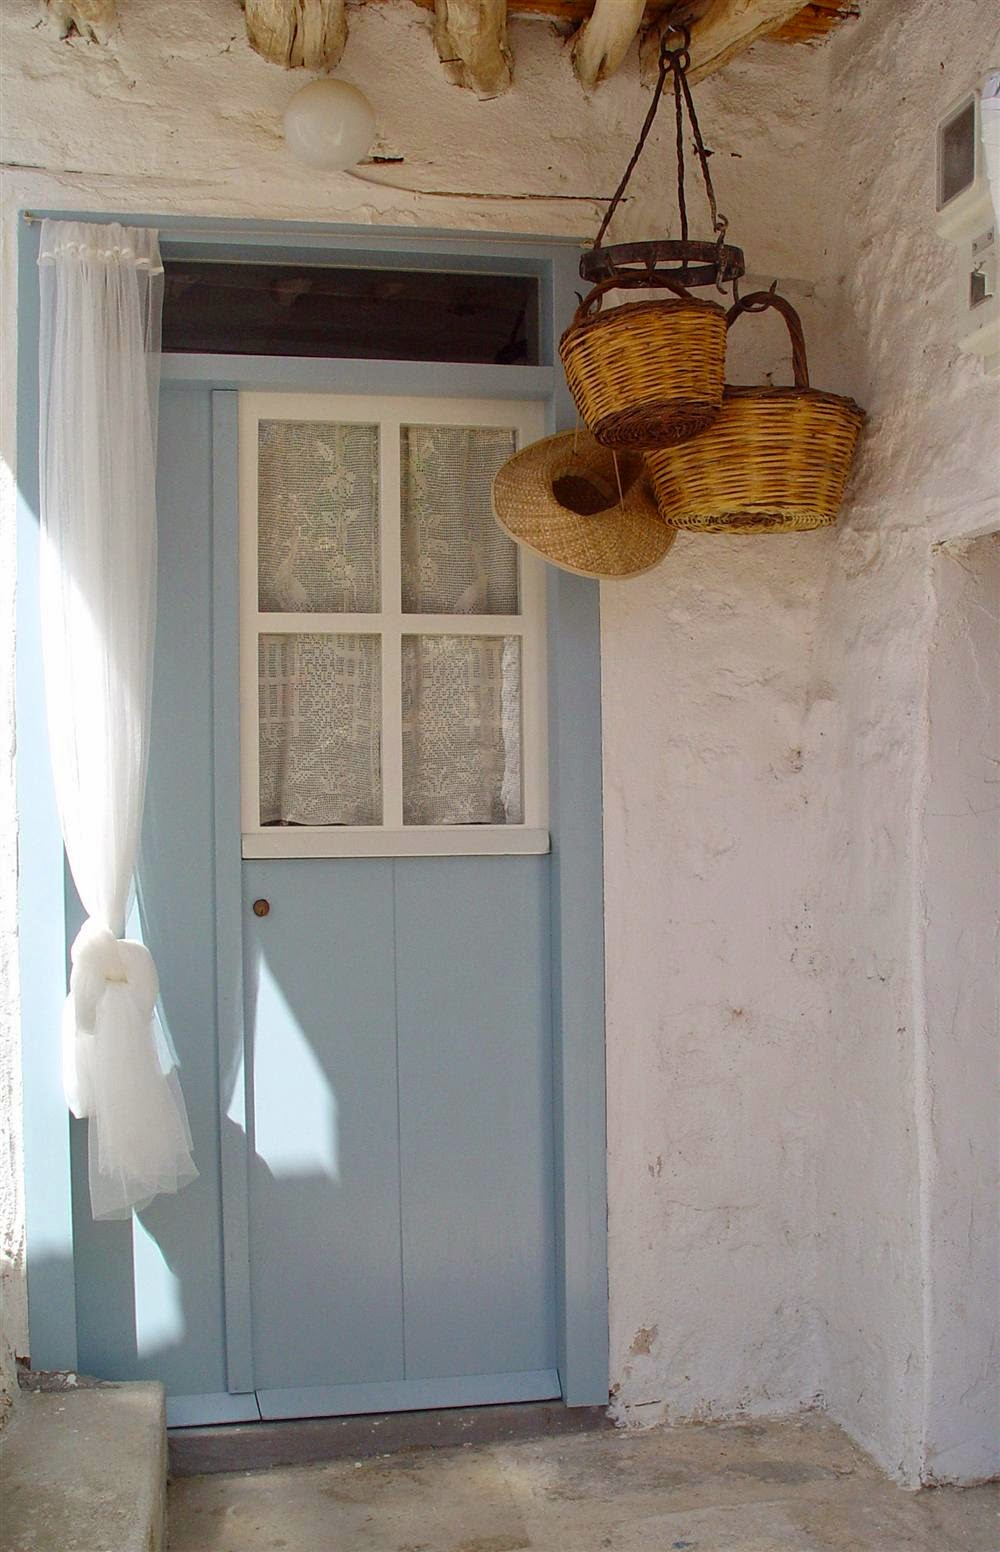 Baskets for storage or decoration are a great fit in greek style interiors.